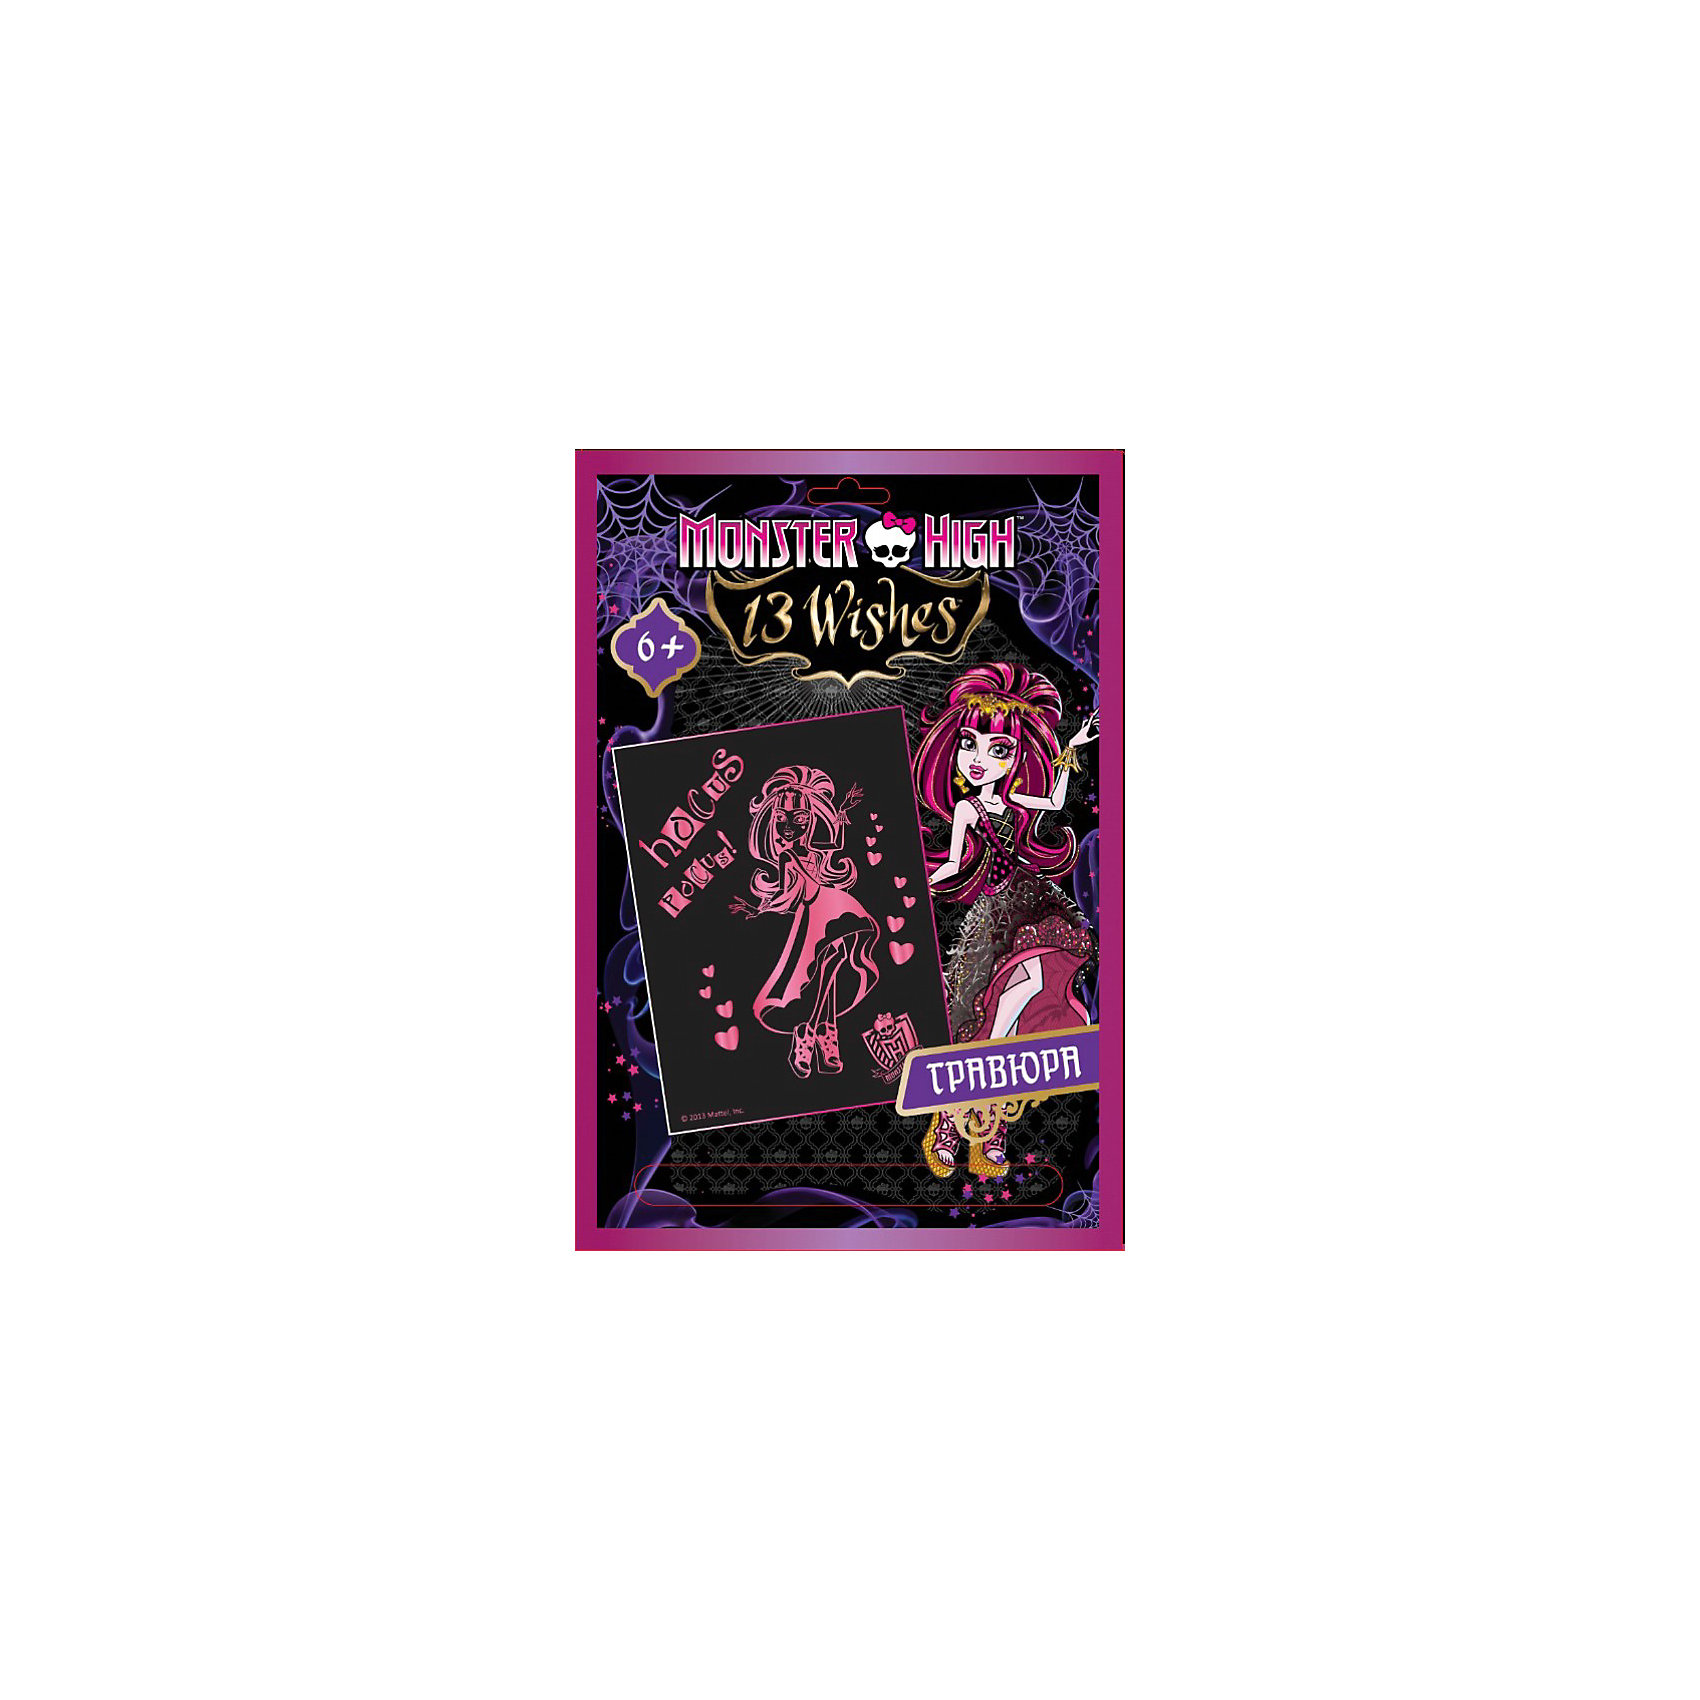 CENTRUM Гравюра Дракула, Monster High, CENTRUM centrum канцелярский набор monster high 4 предмета